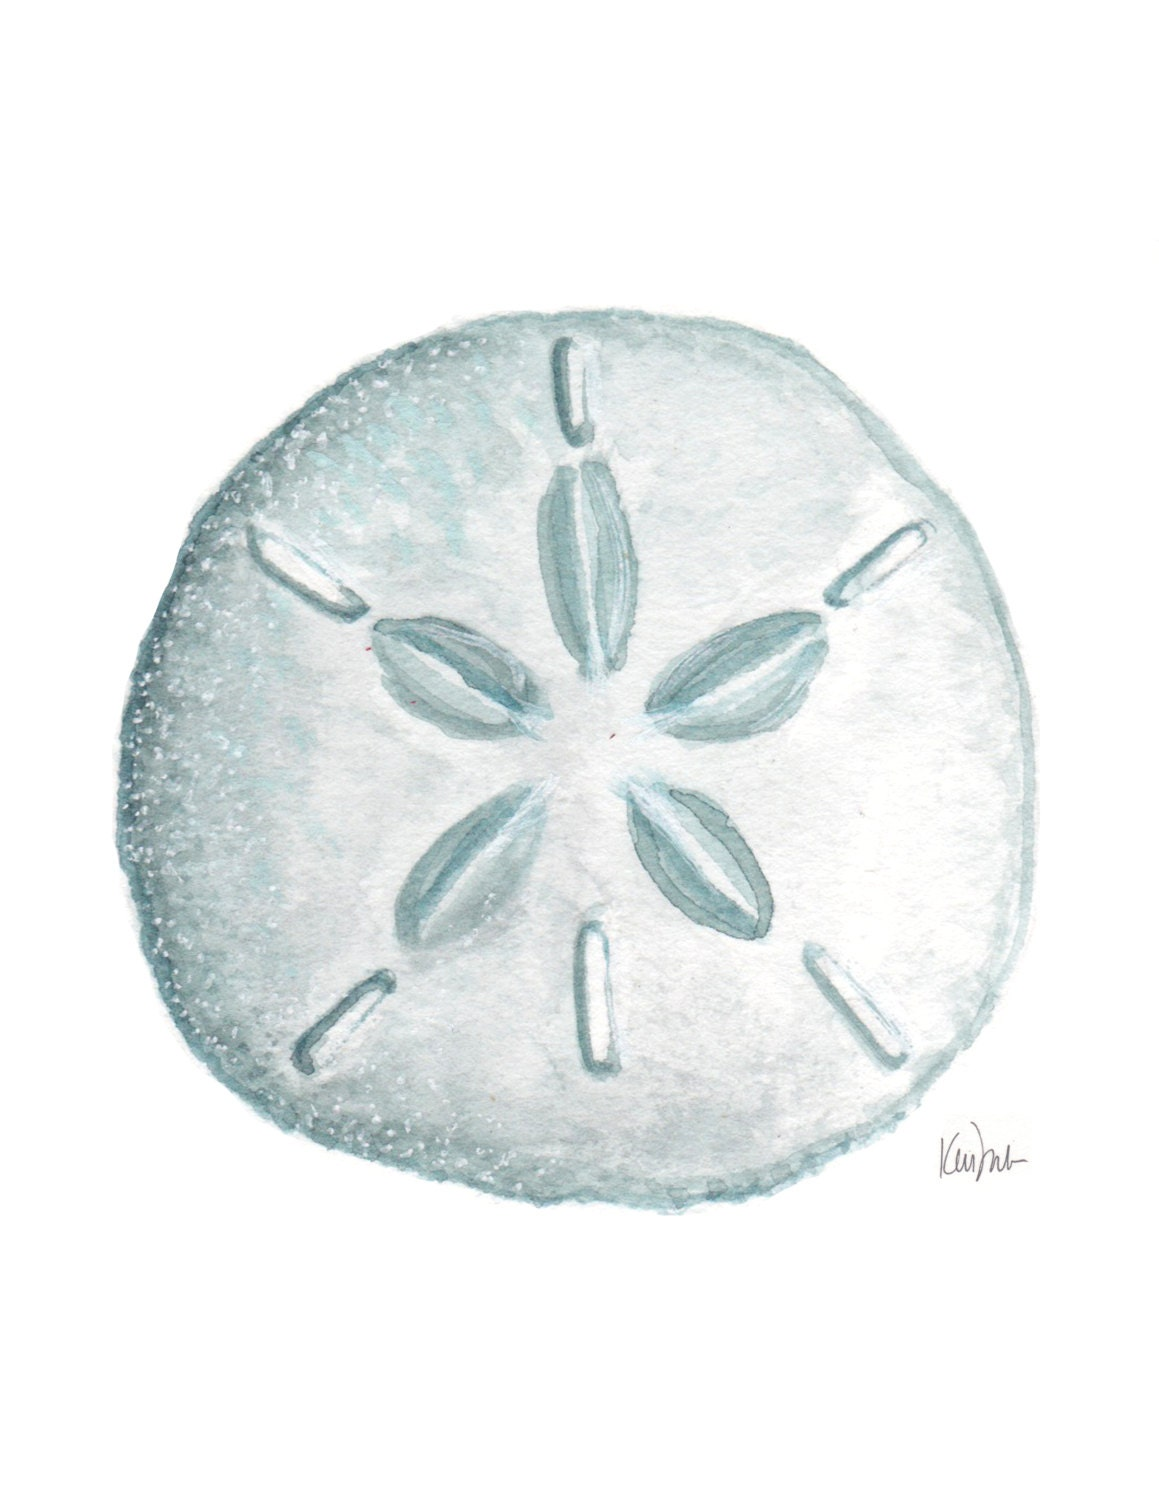 Blue sand dollar illustration - photo#2